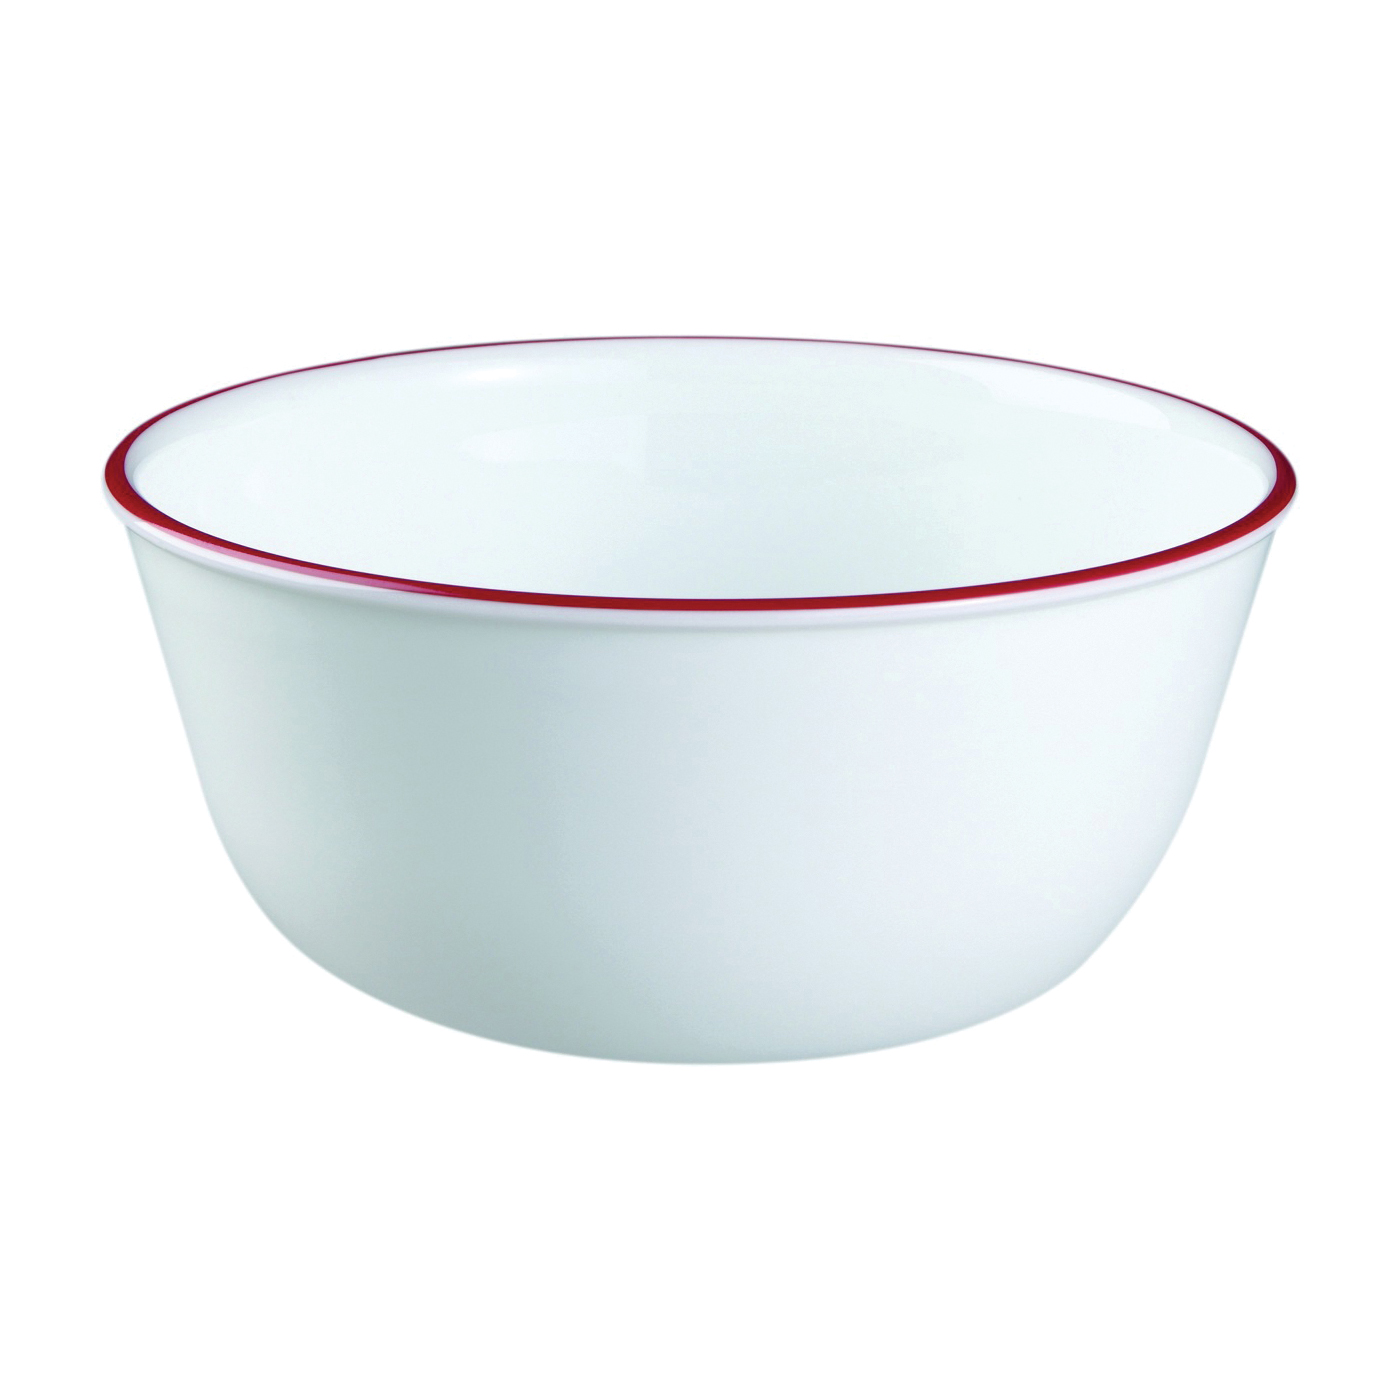 Picture of OLFA 1060572 Soup/Cereal Bowl, Vitrelle Glass, Red/White, For: Dishwashers and Microwave Ovens